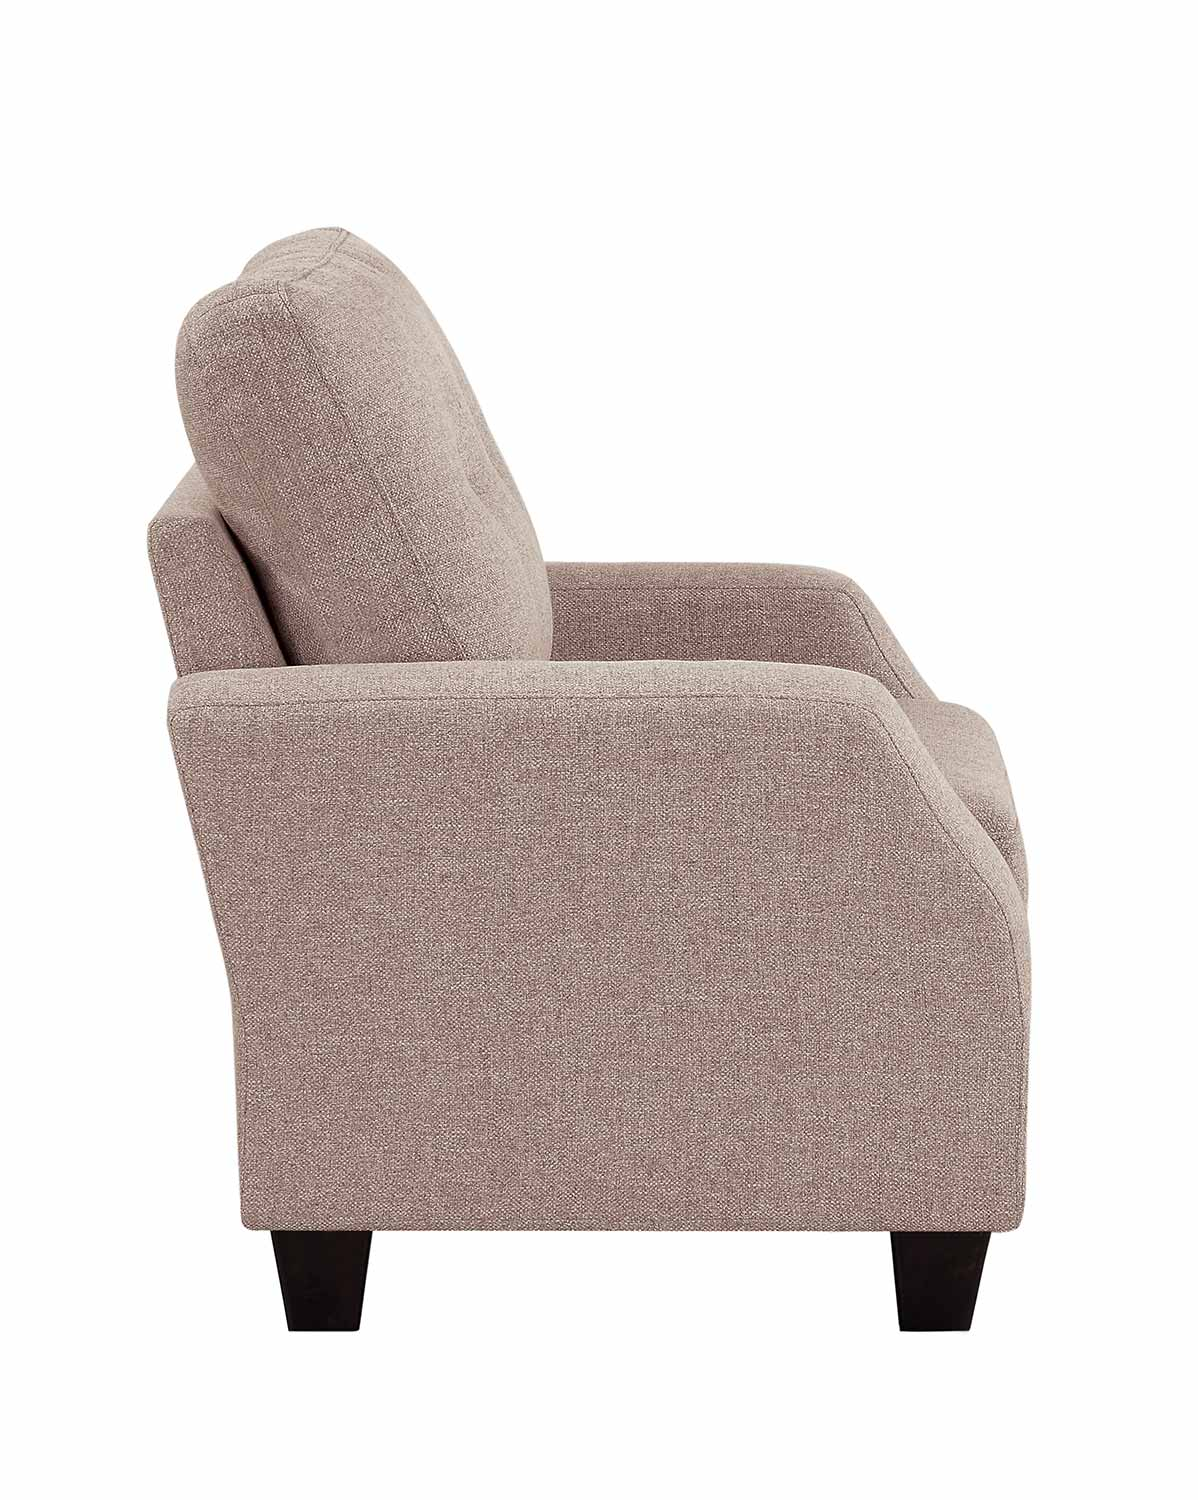 Homelegance Vossel Chair - Sand